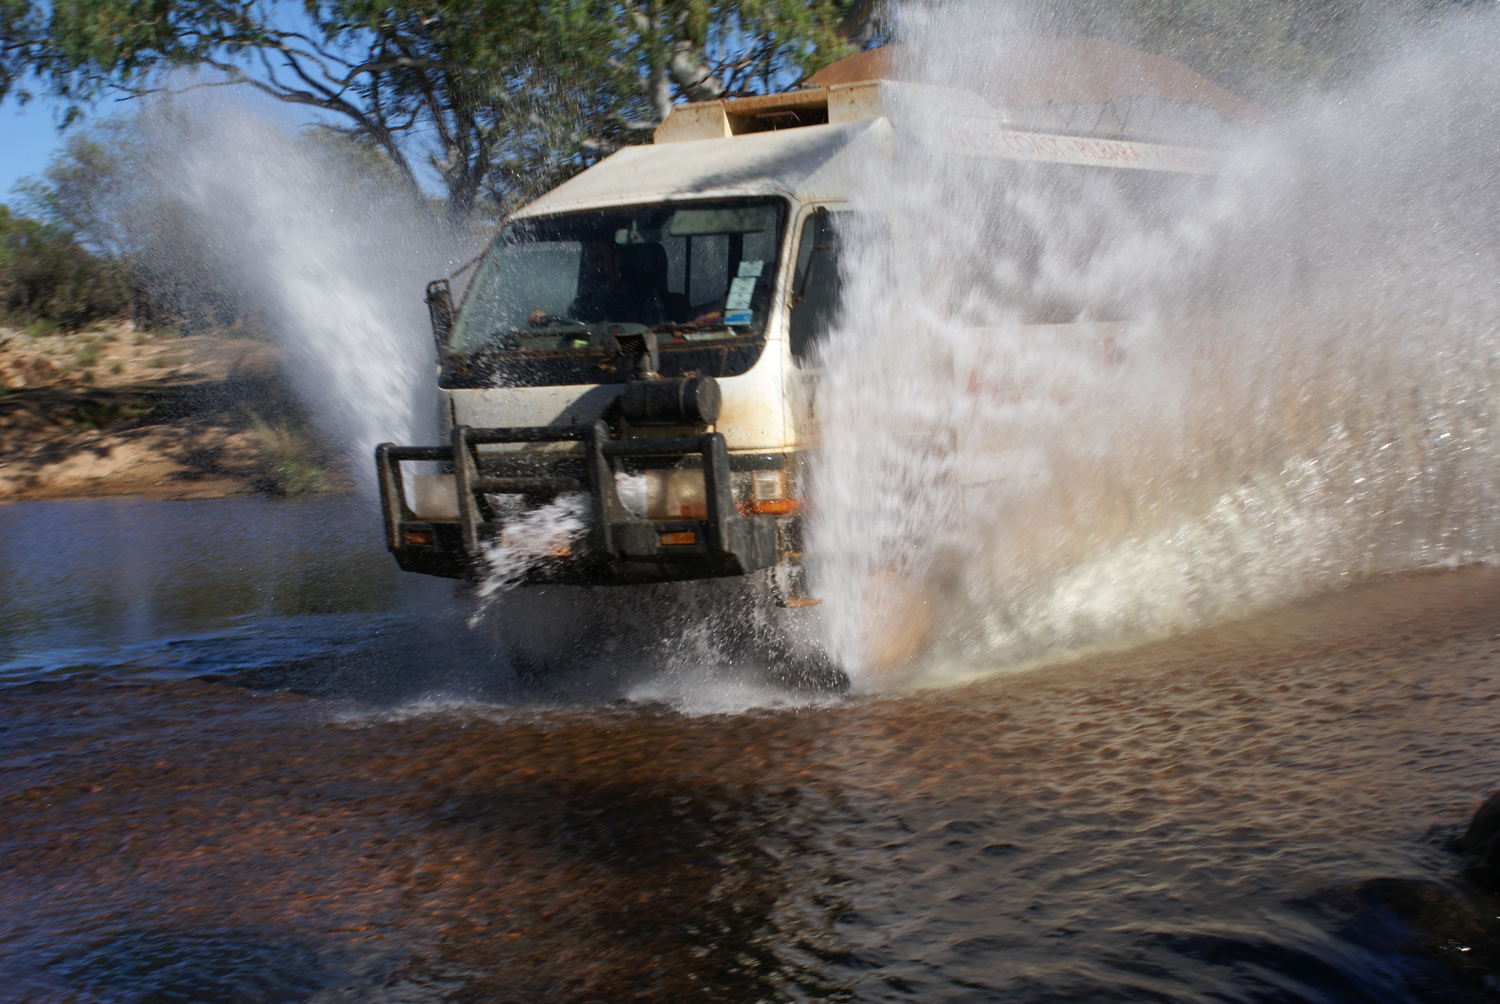 My picture of our van at a river crossing